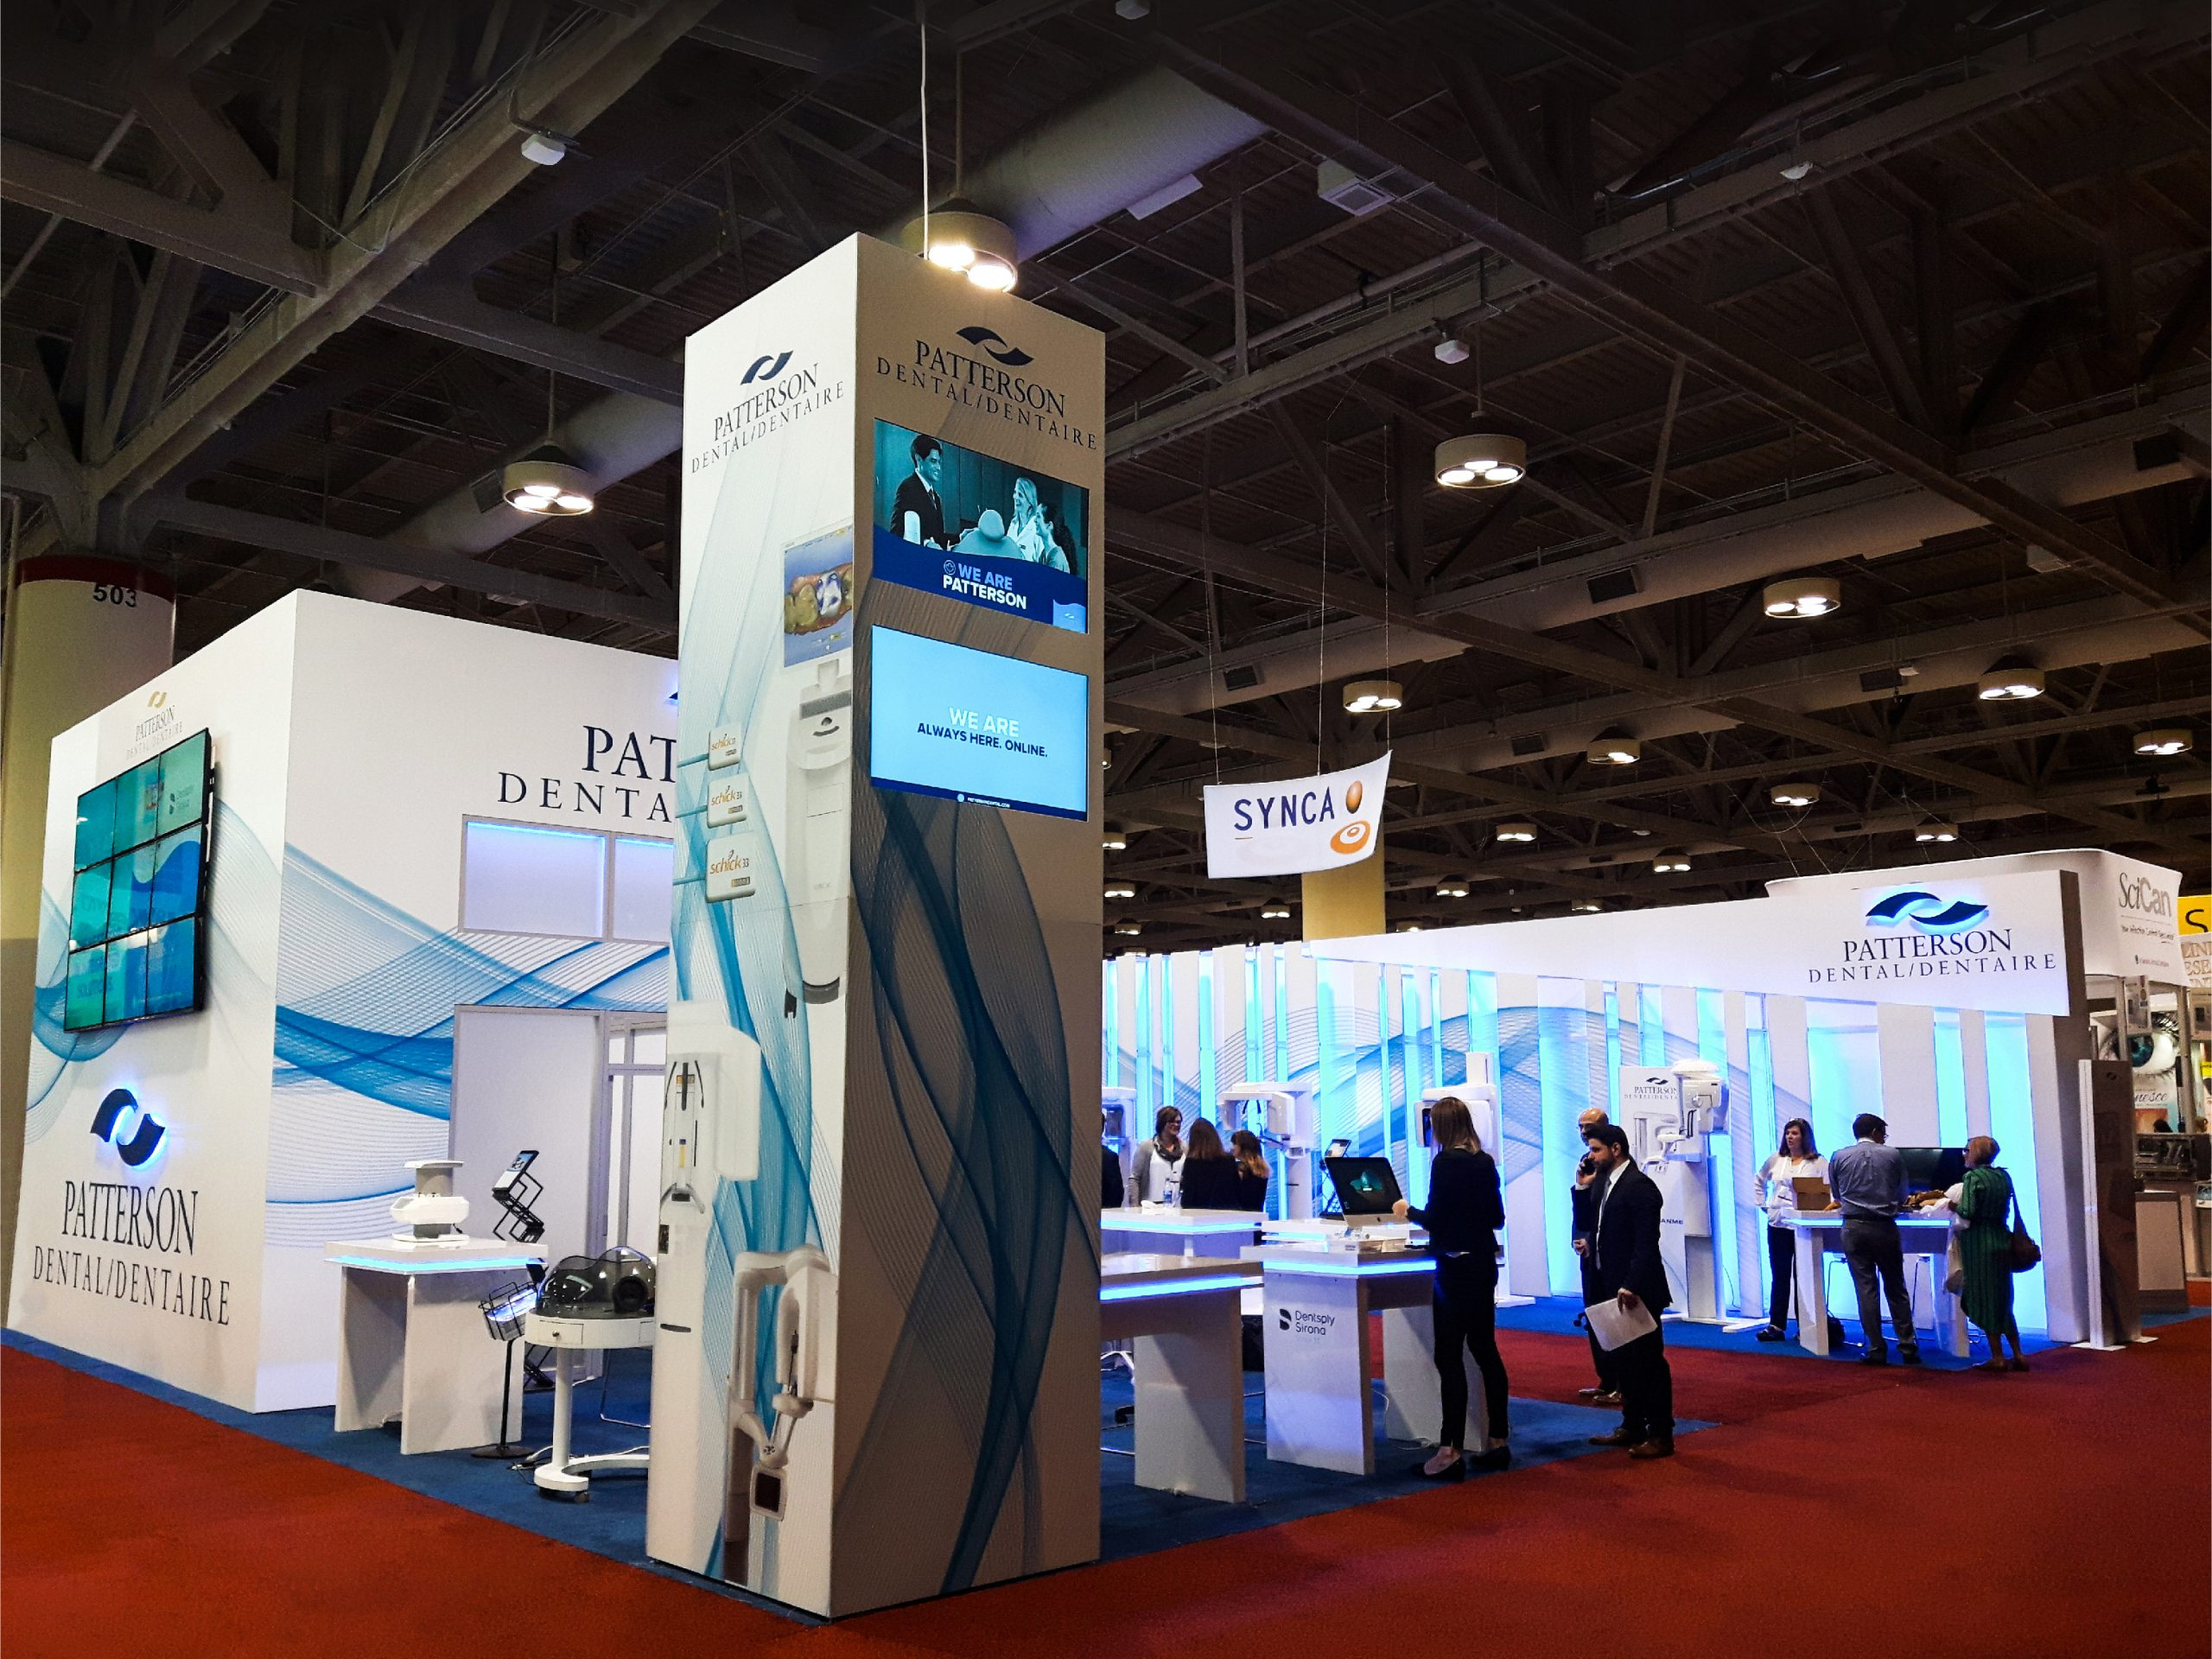 an image of the media tower and light wall for the Patterson Dental activation